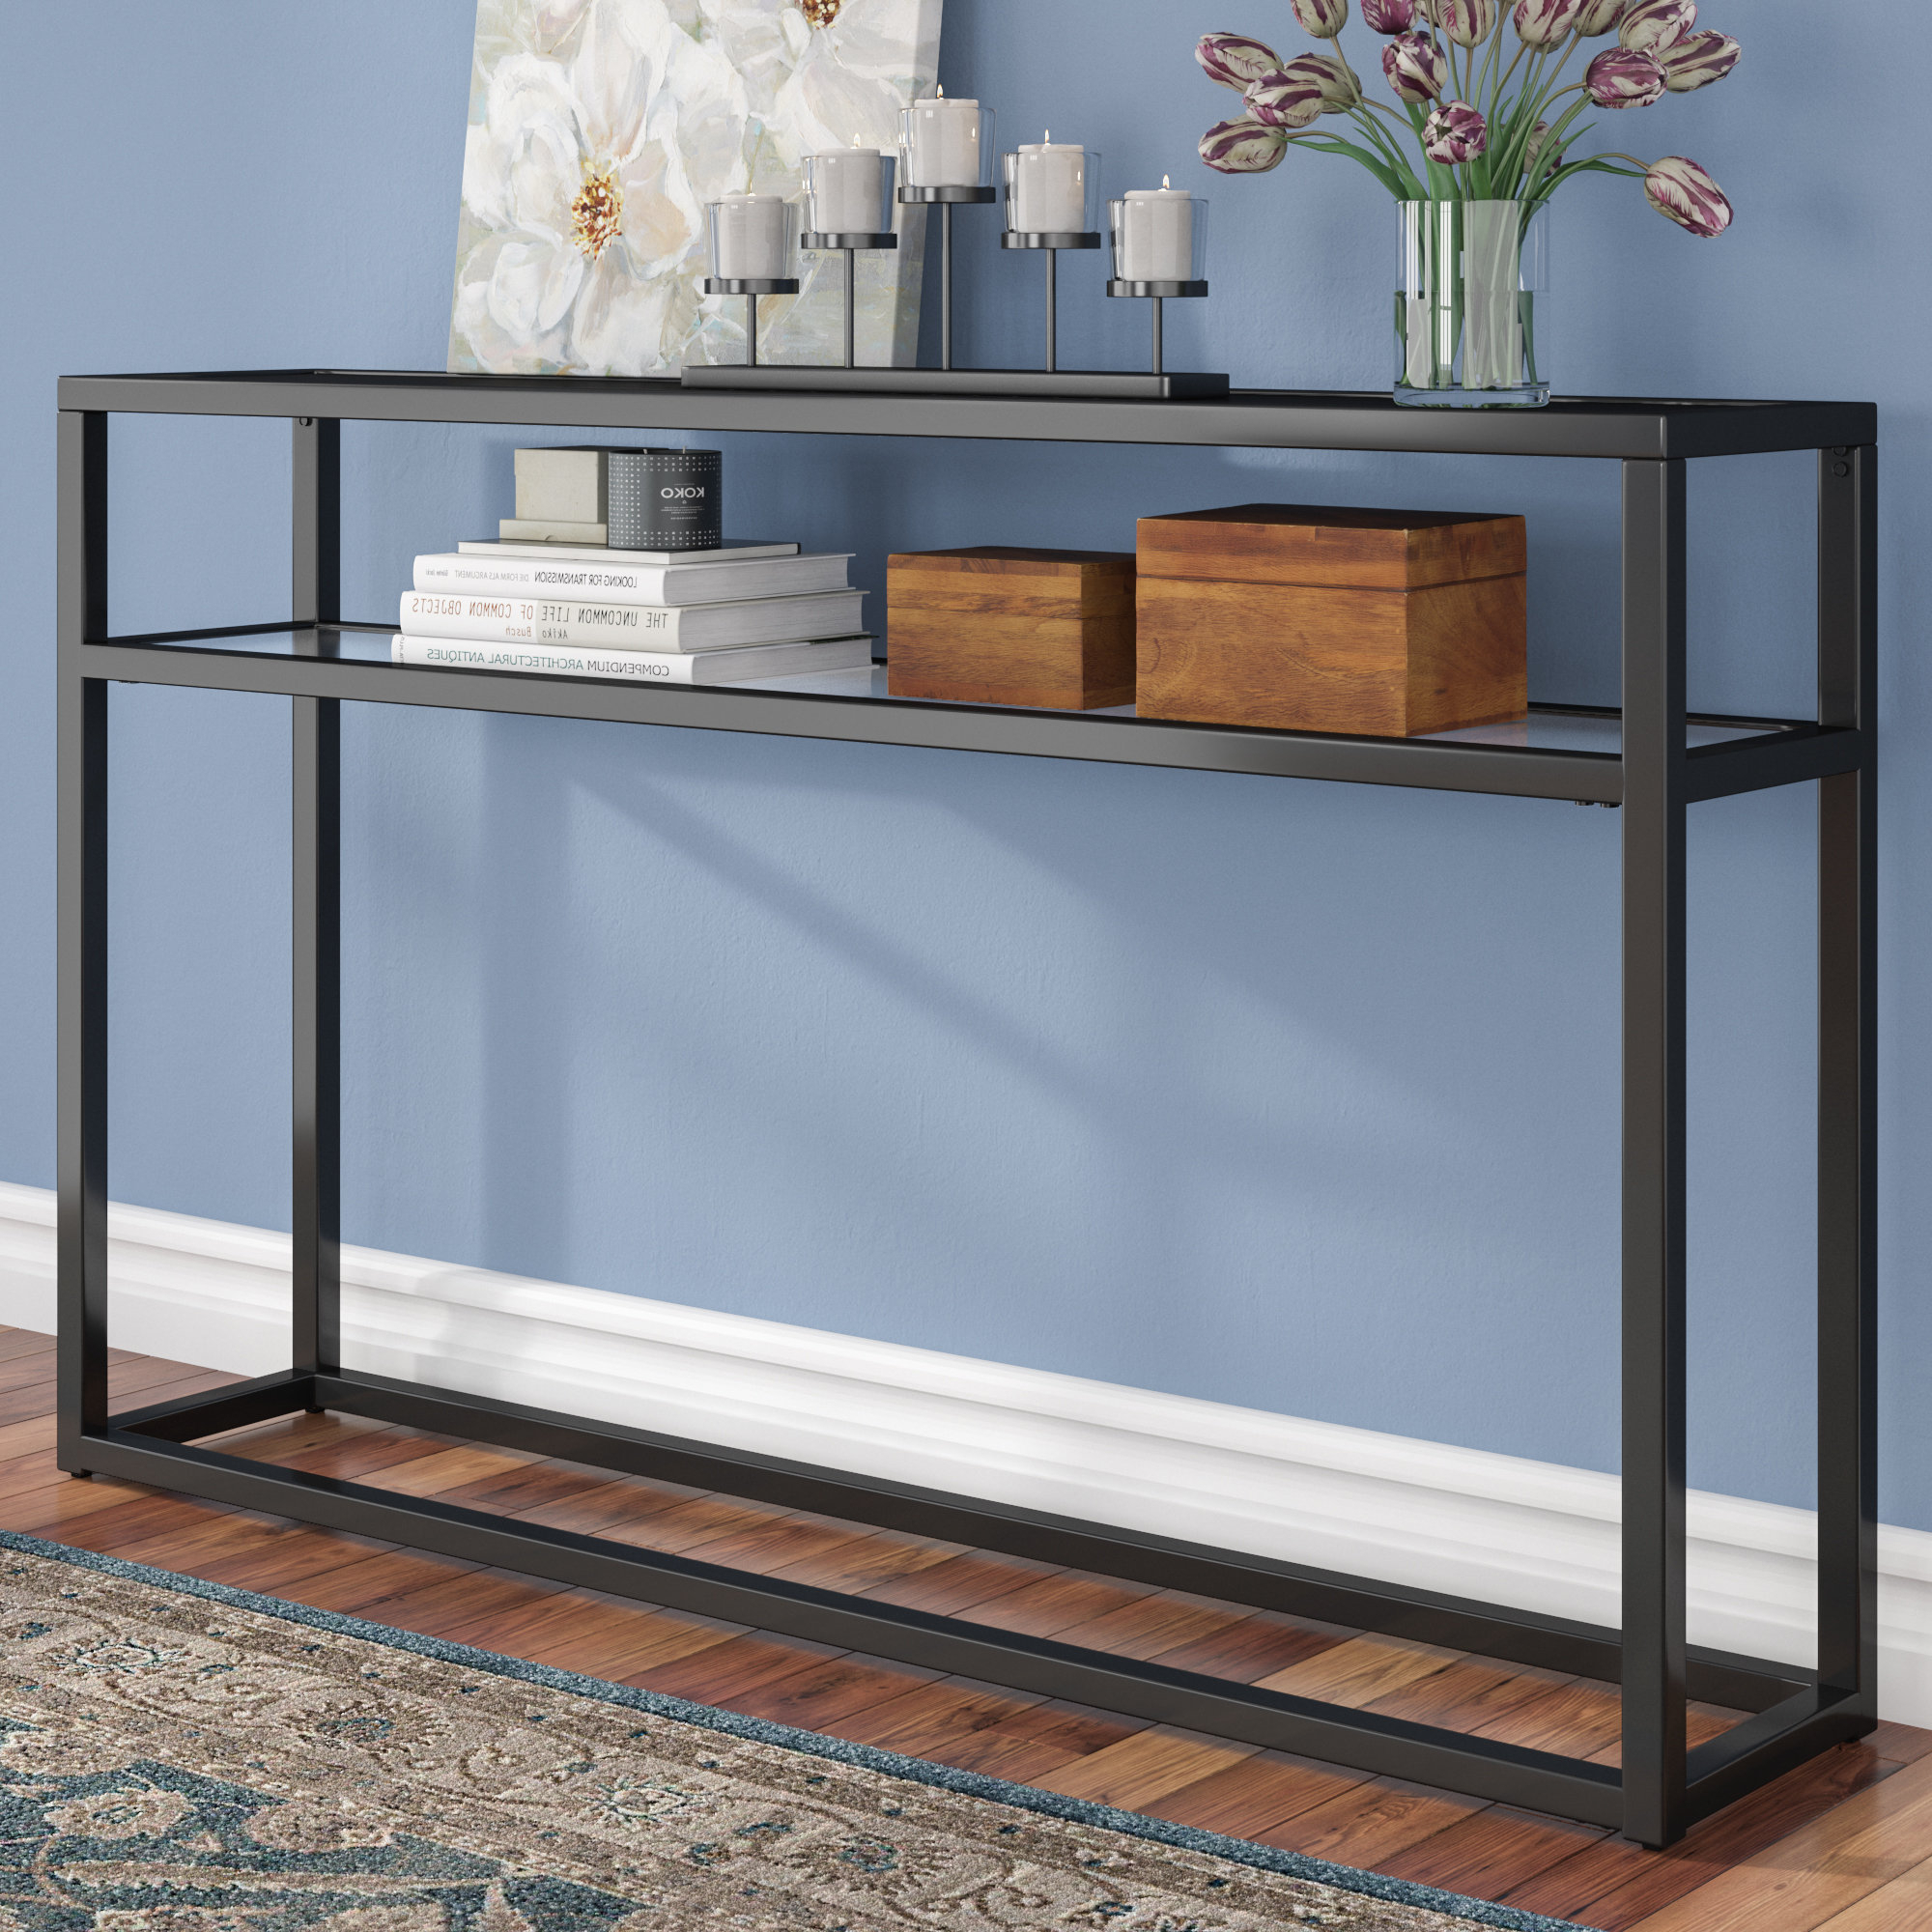 Narrow Low Console Table | Wayfair Inside Layered Wood Small Square Console Tables (Gallery 5 of 20)